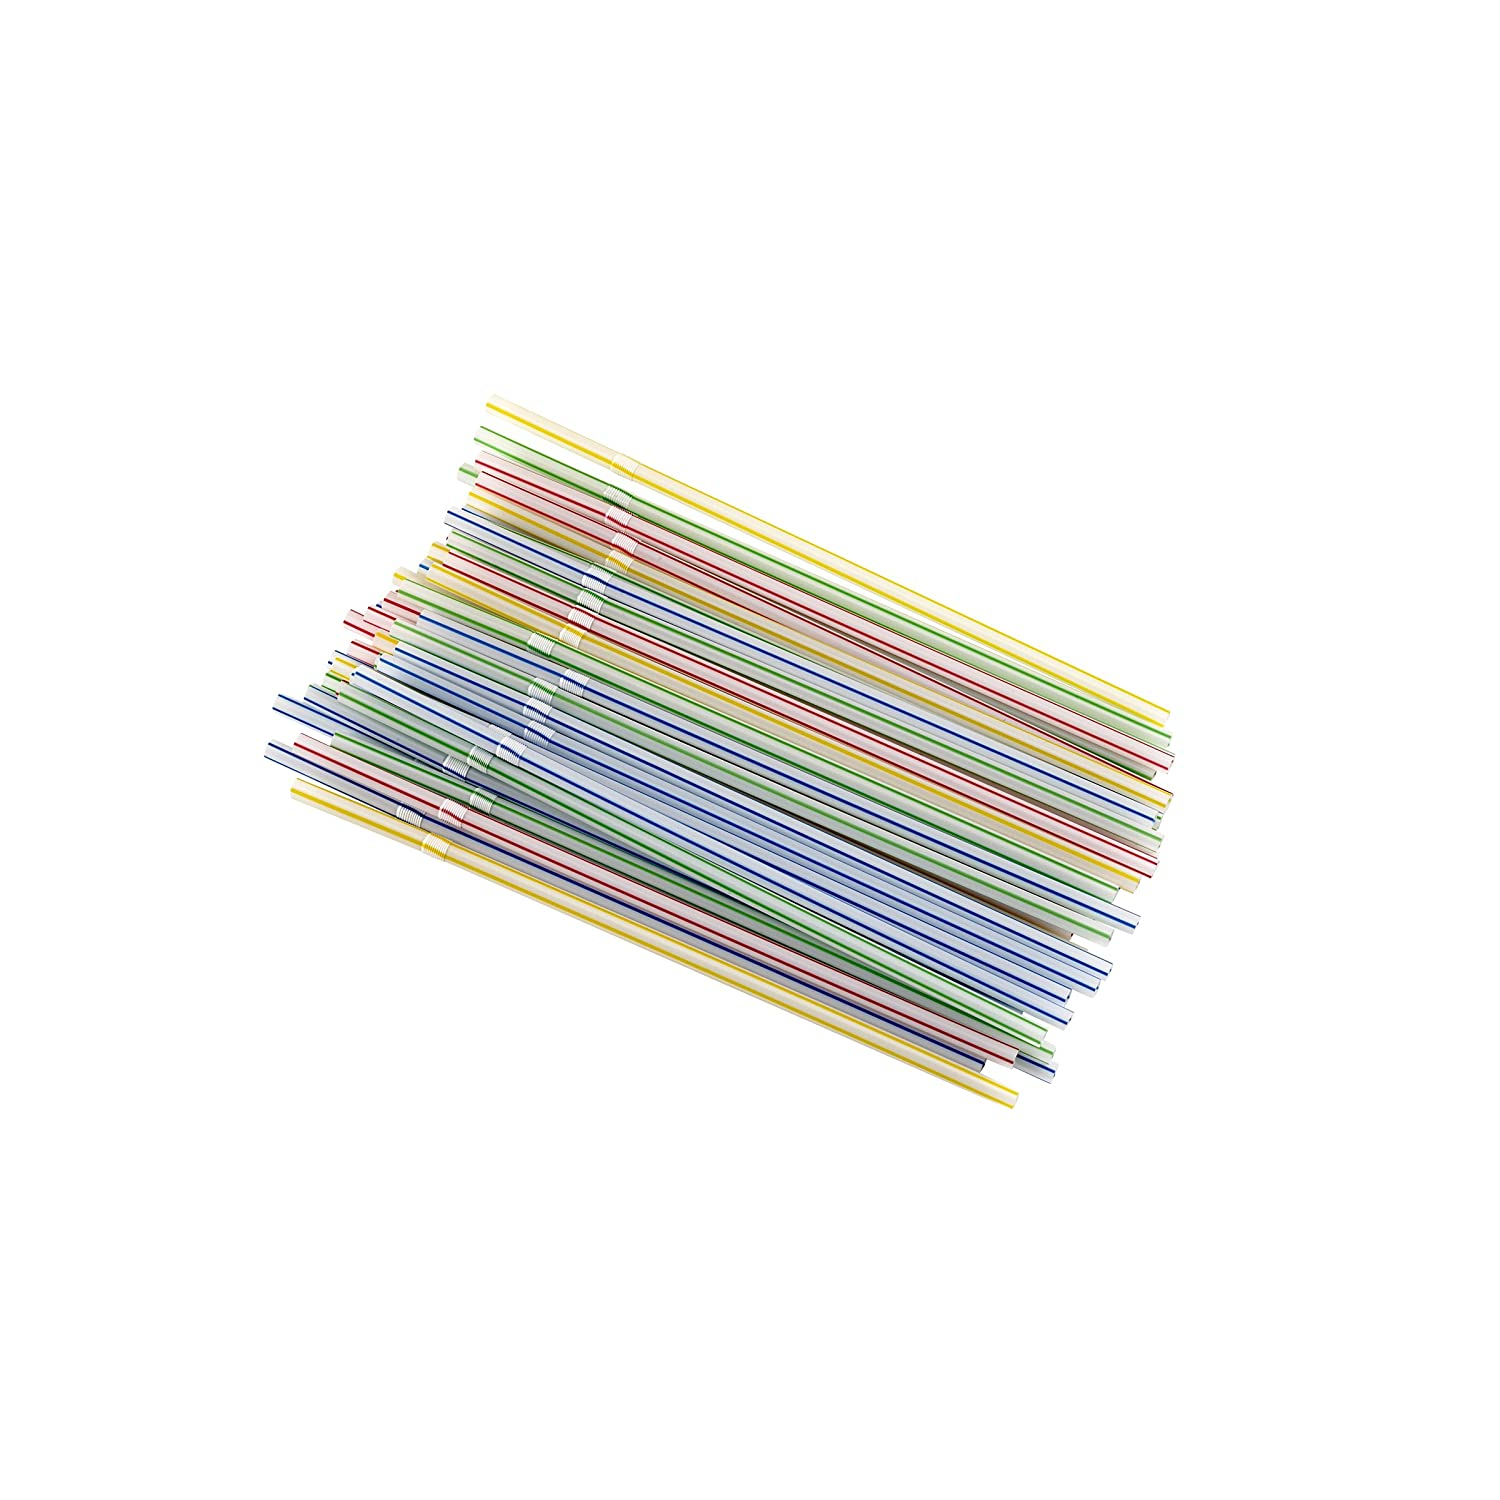 Image: Good Cook Flexible Drinking Straws - 50 count bendable straws are great for all drinks